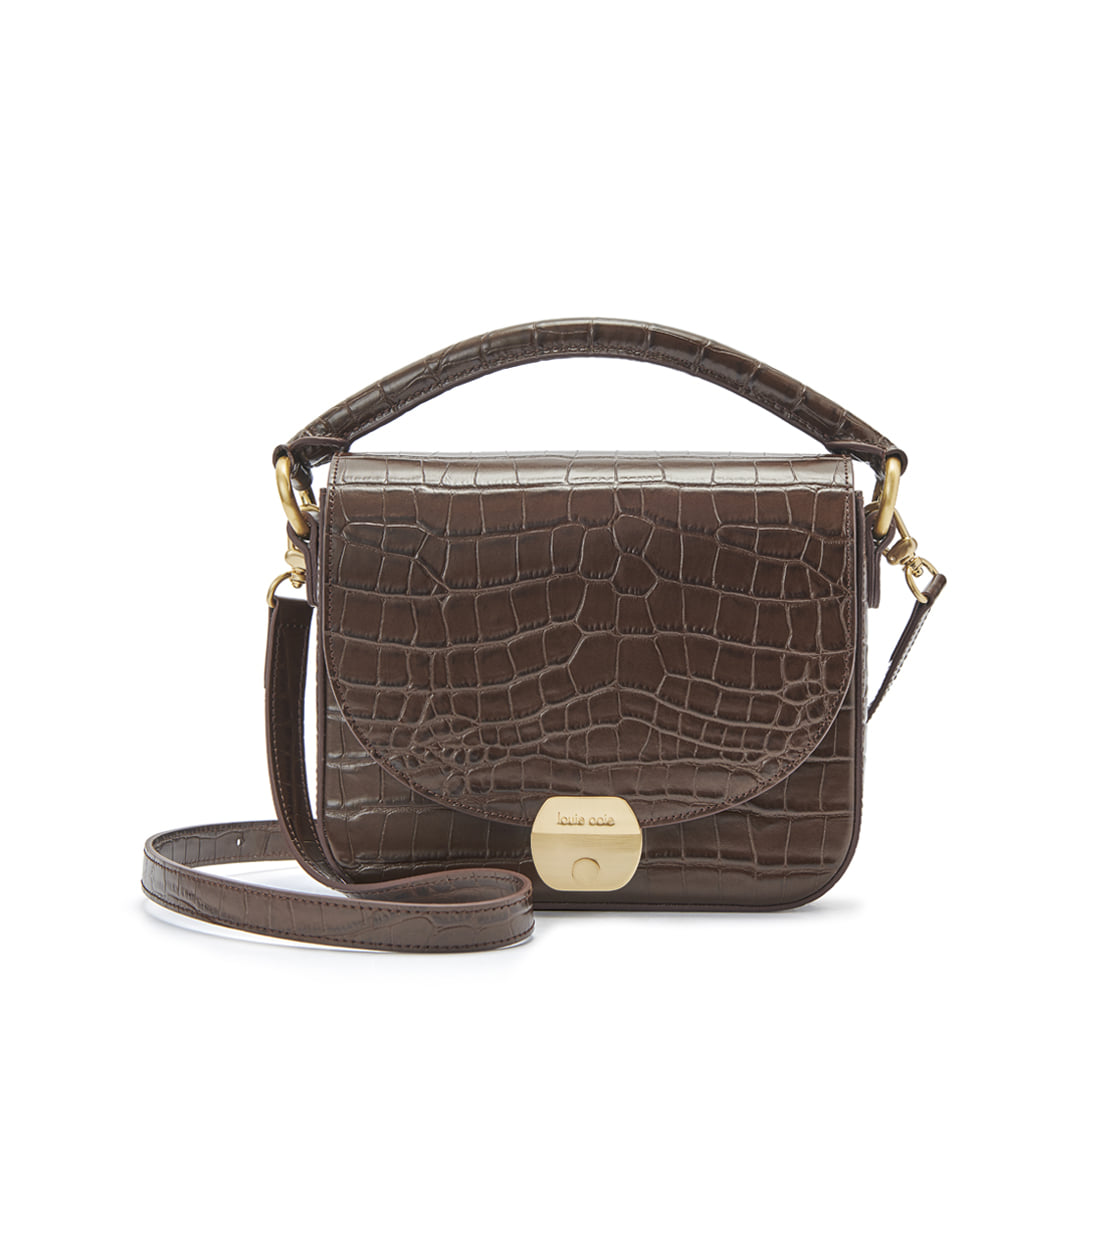 betty bag - brown embo [refurb 50%]